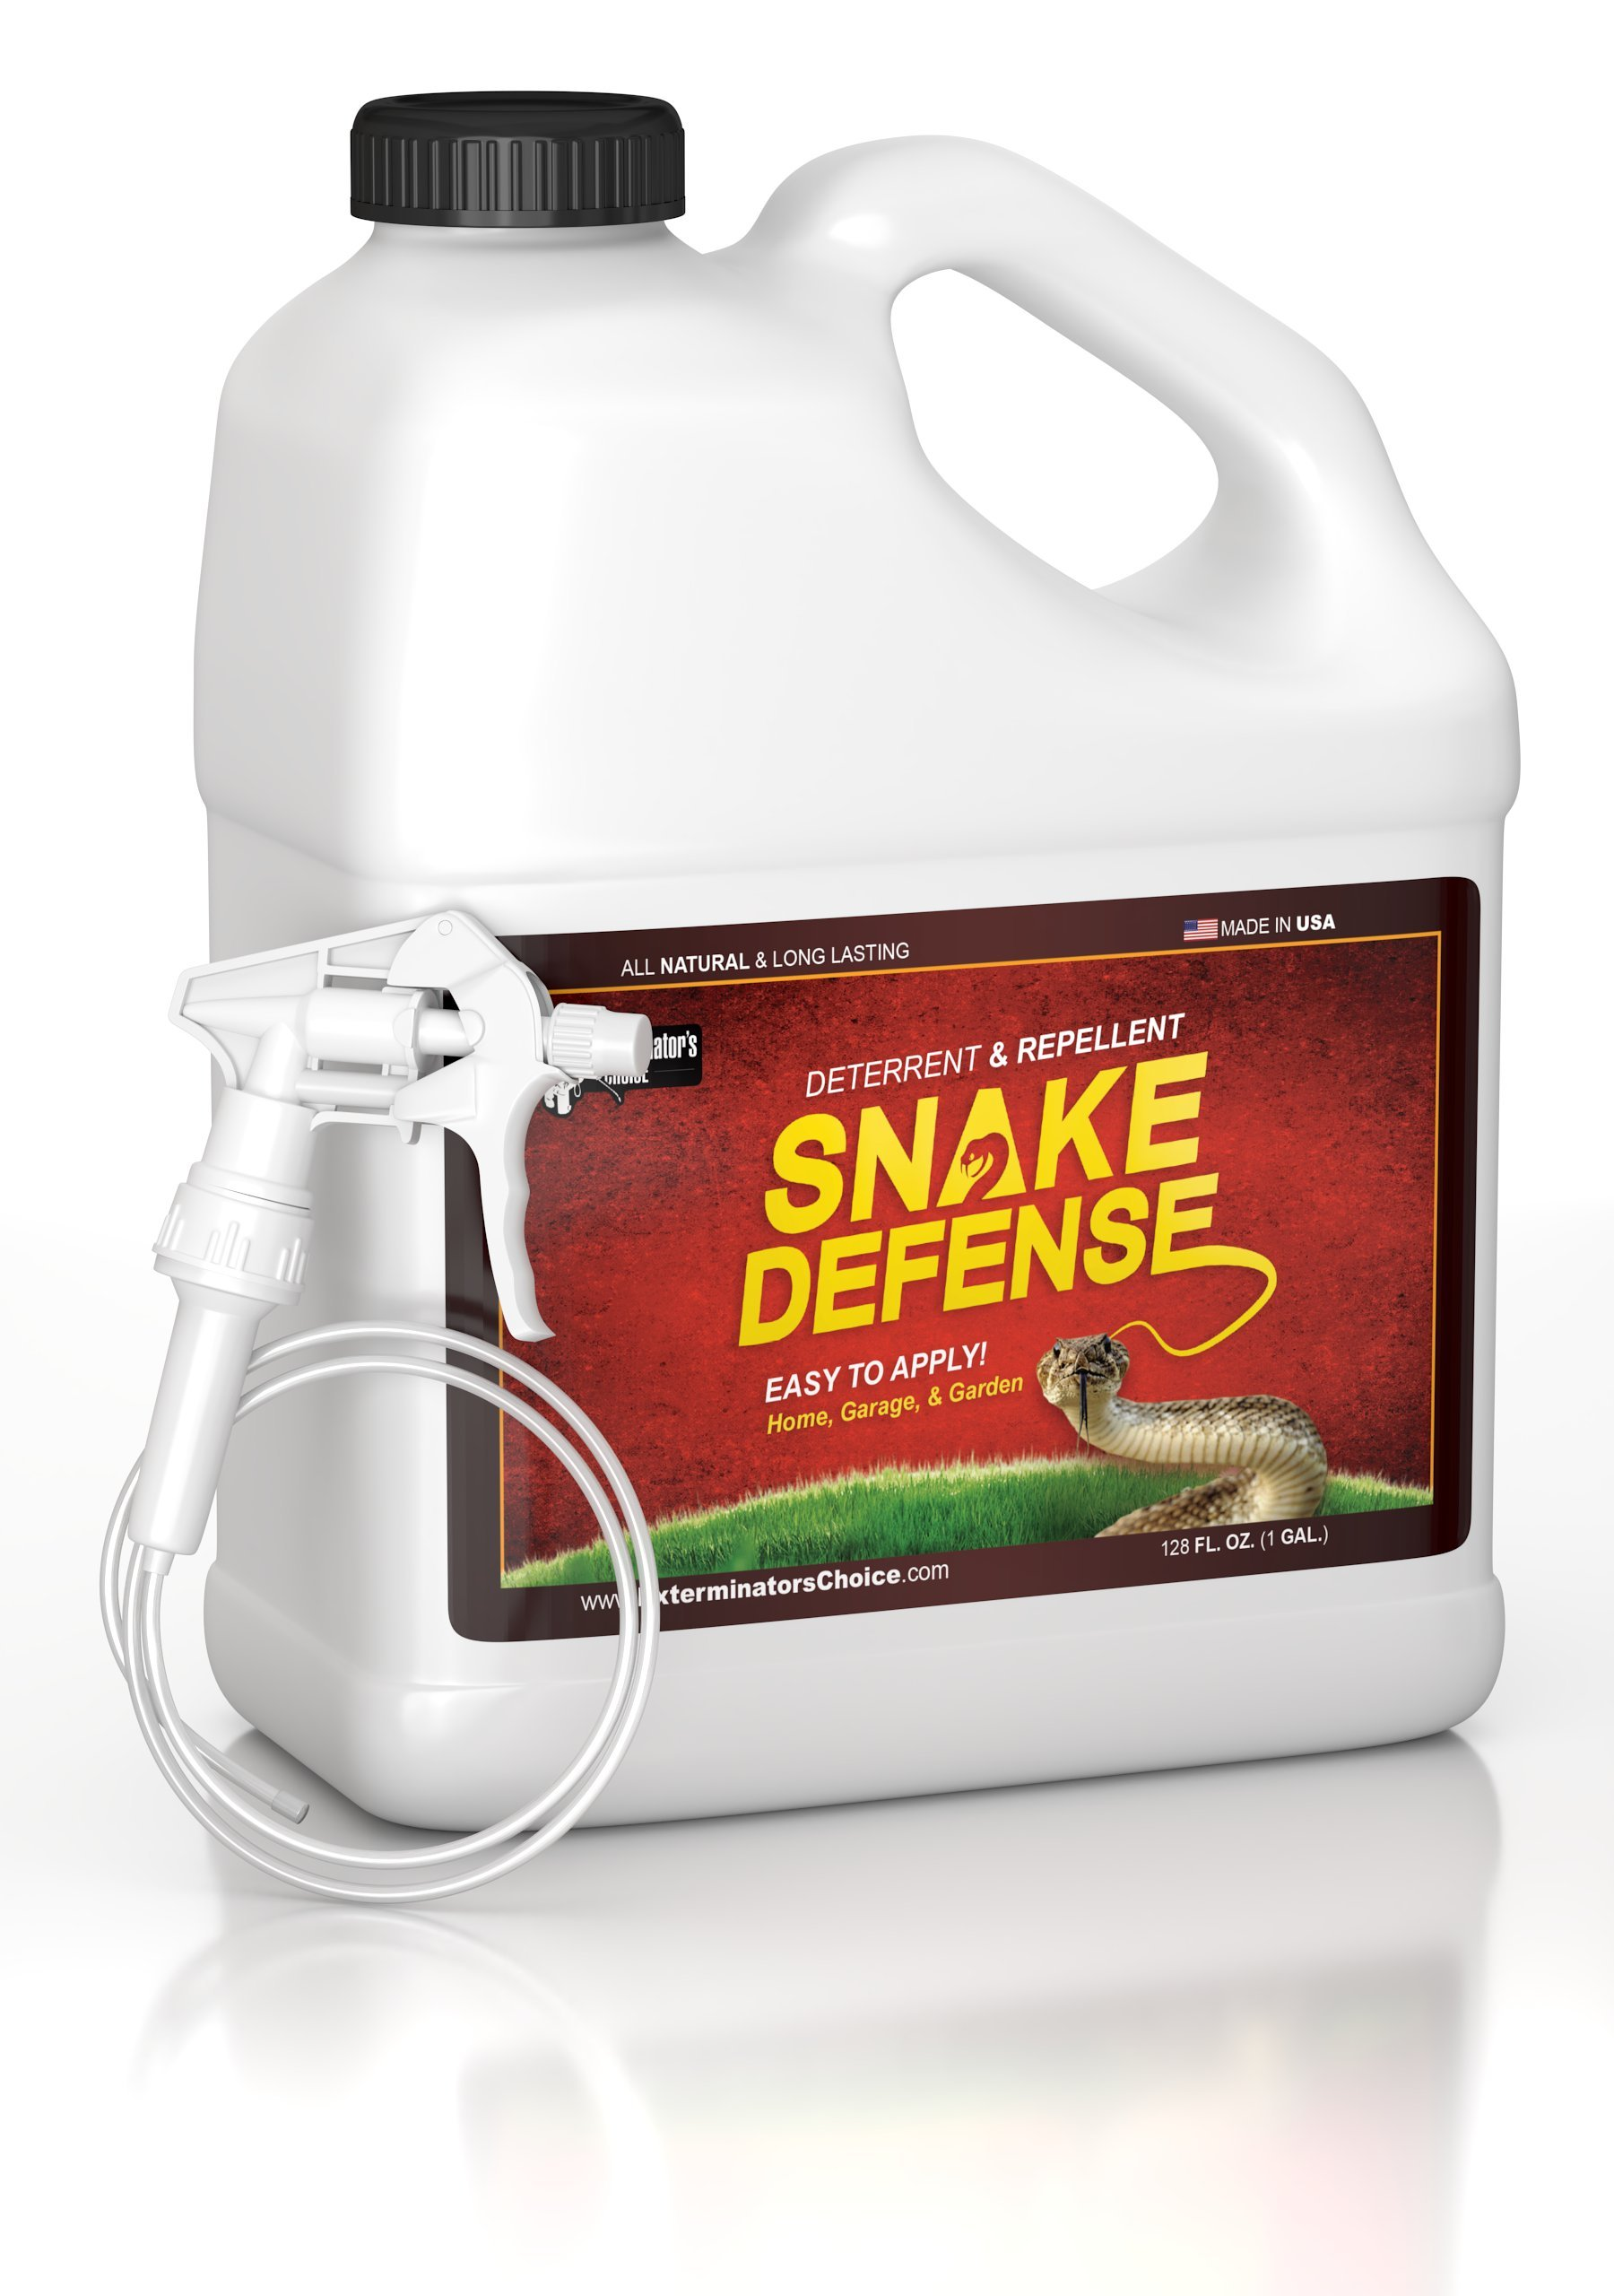 Snake Defense One Gallon Spray Repellent and Deterrent for All Types of Snakes...... by Exterminators Choice